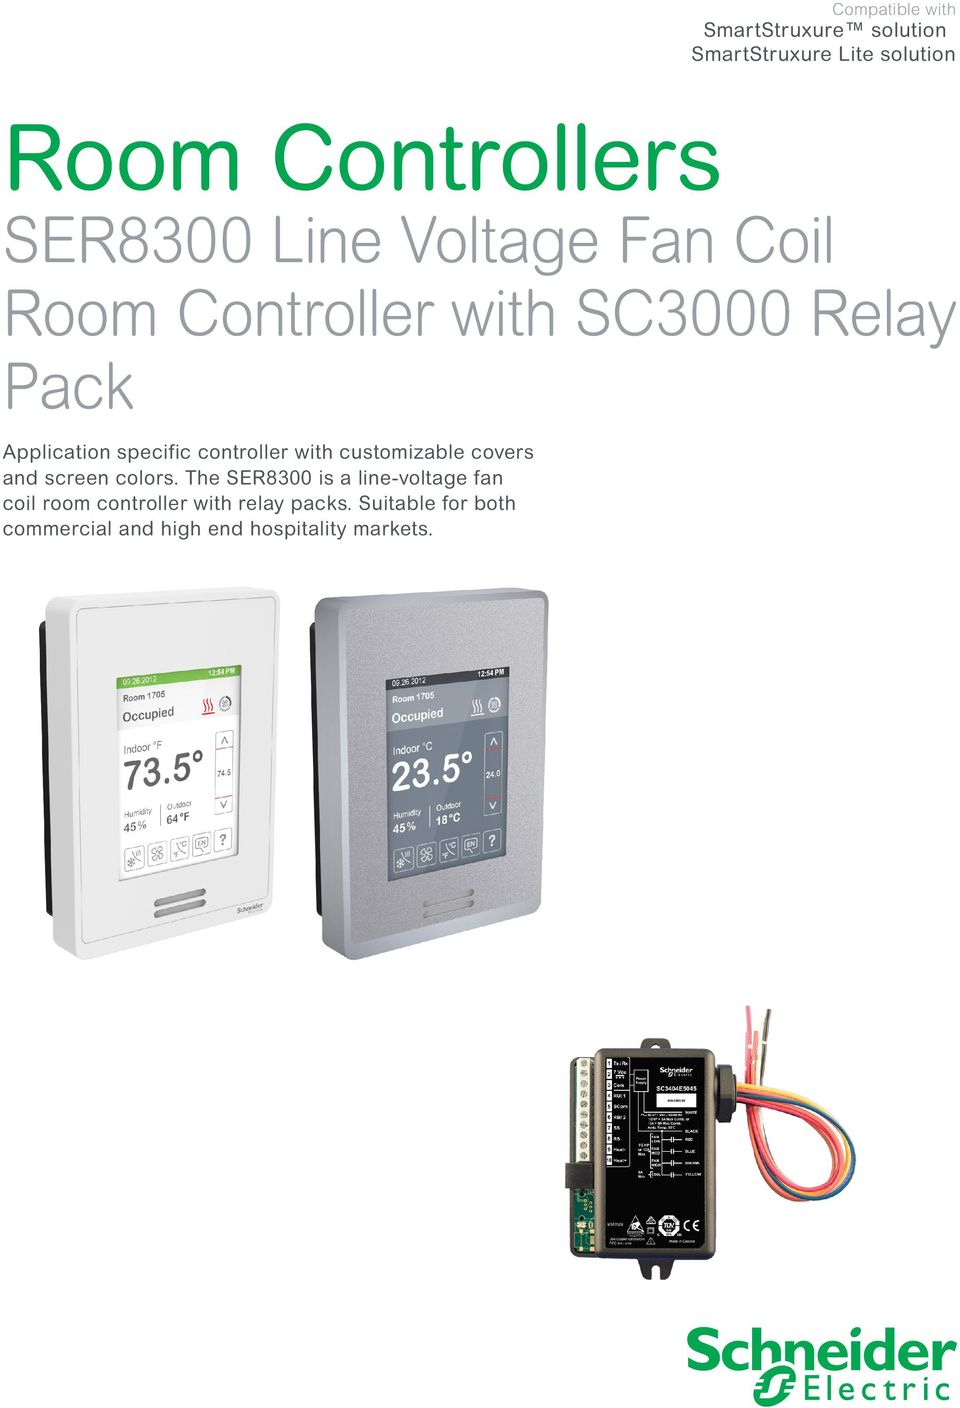 Room Controllers Ser8300 Line Voltage Fan Coil Controller With Relay Energy Saver Customizable Covers And Screen Colors